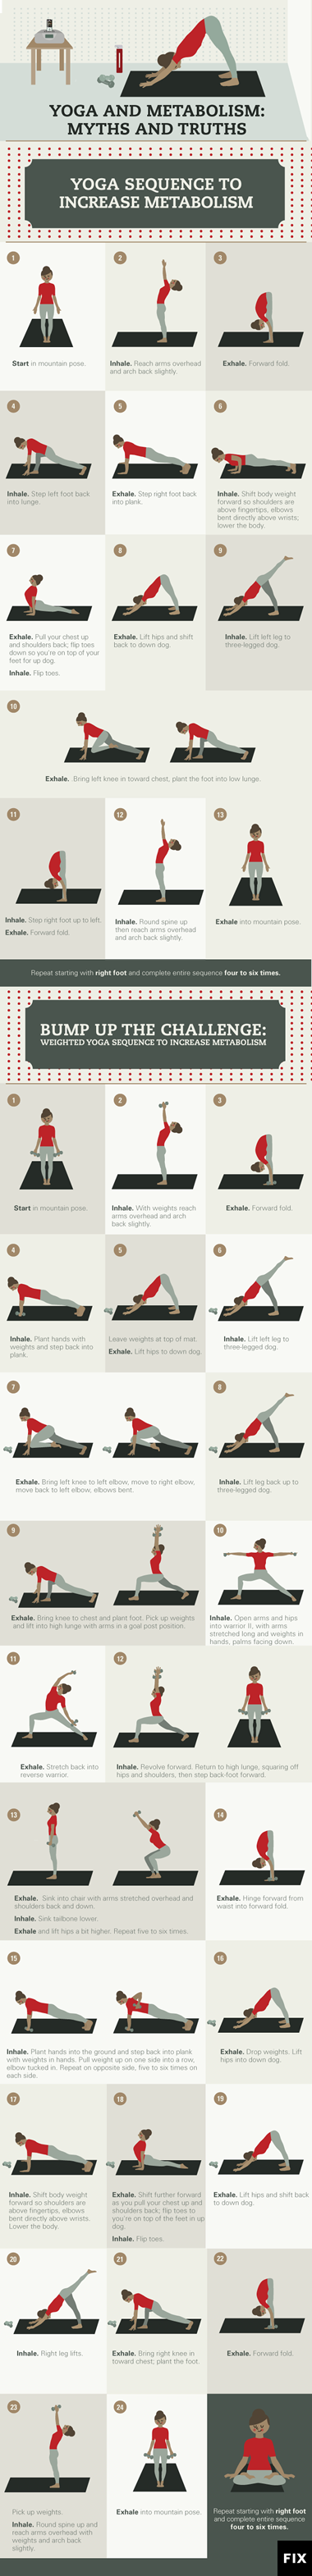 Tips To Stay In Tip Top Yoga Shape